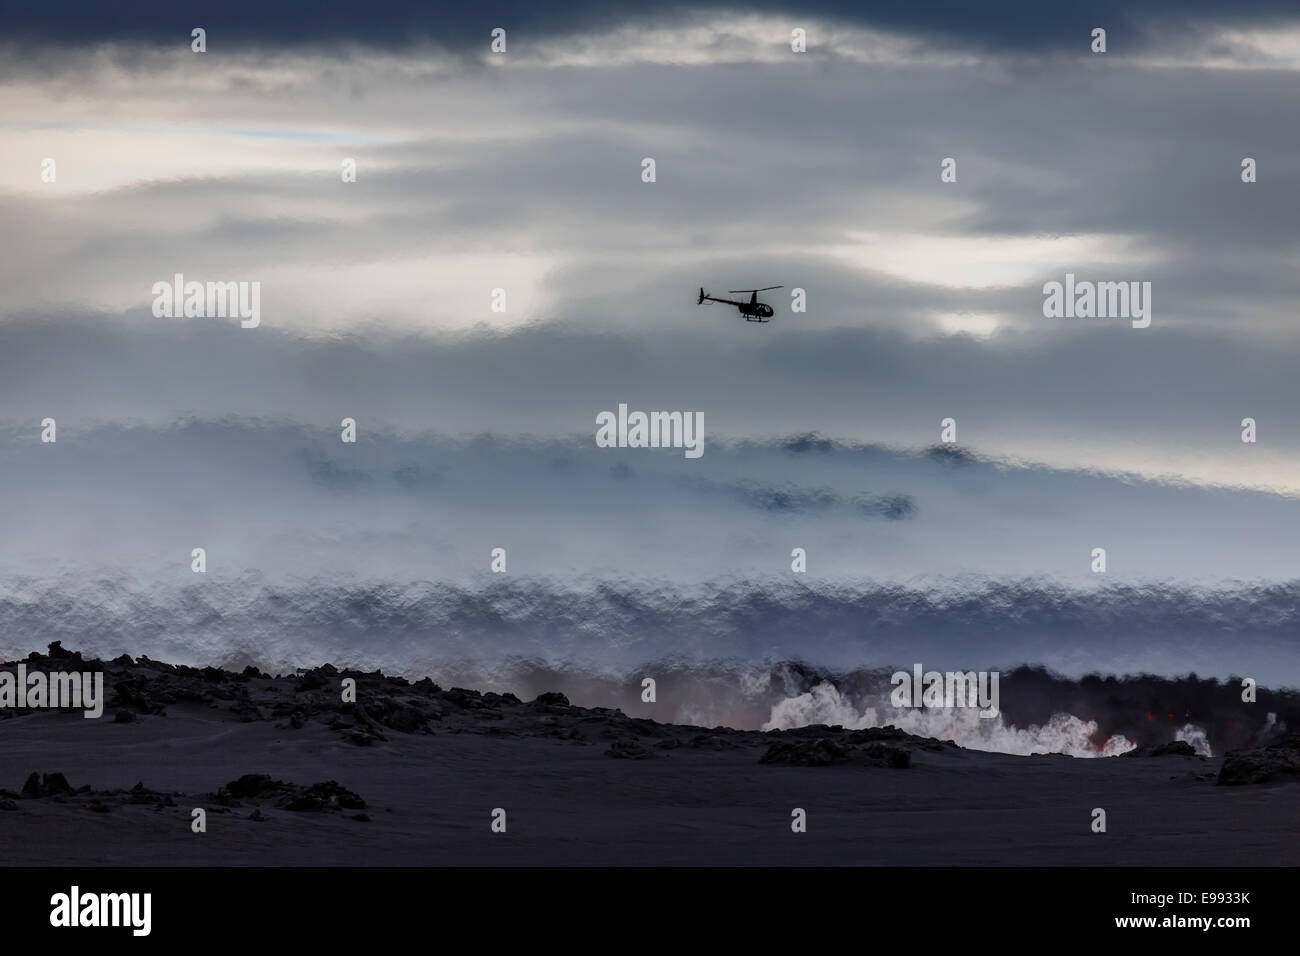 Helicopter flying over the volcano eruption at the Holuhruan Fissure, near the Bardarbunga Volcano, Iceland. - Stock Image